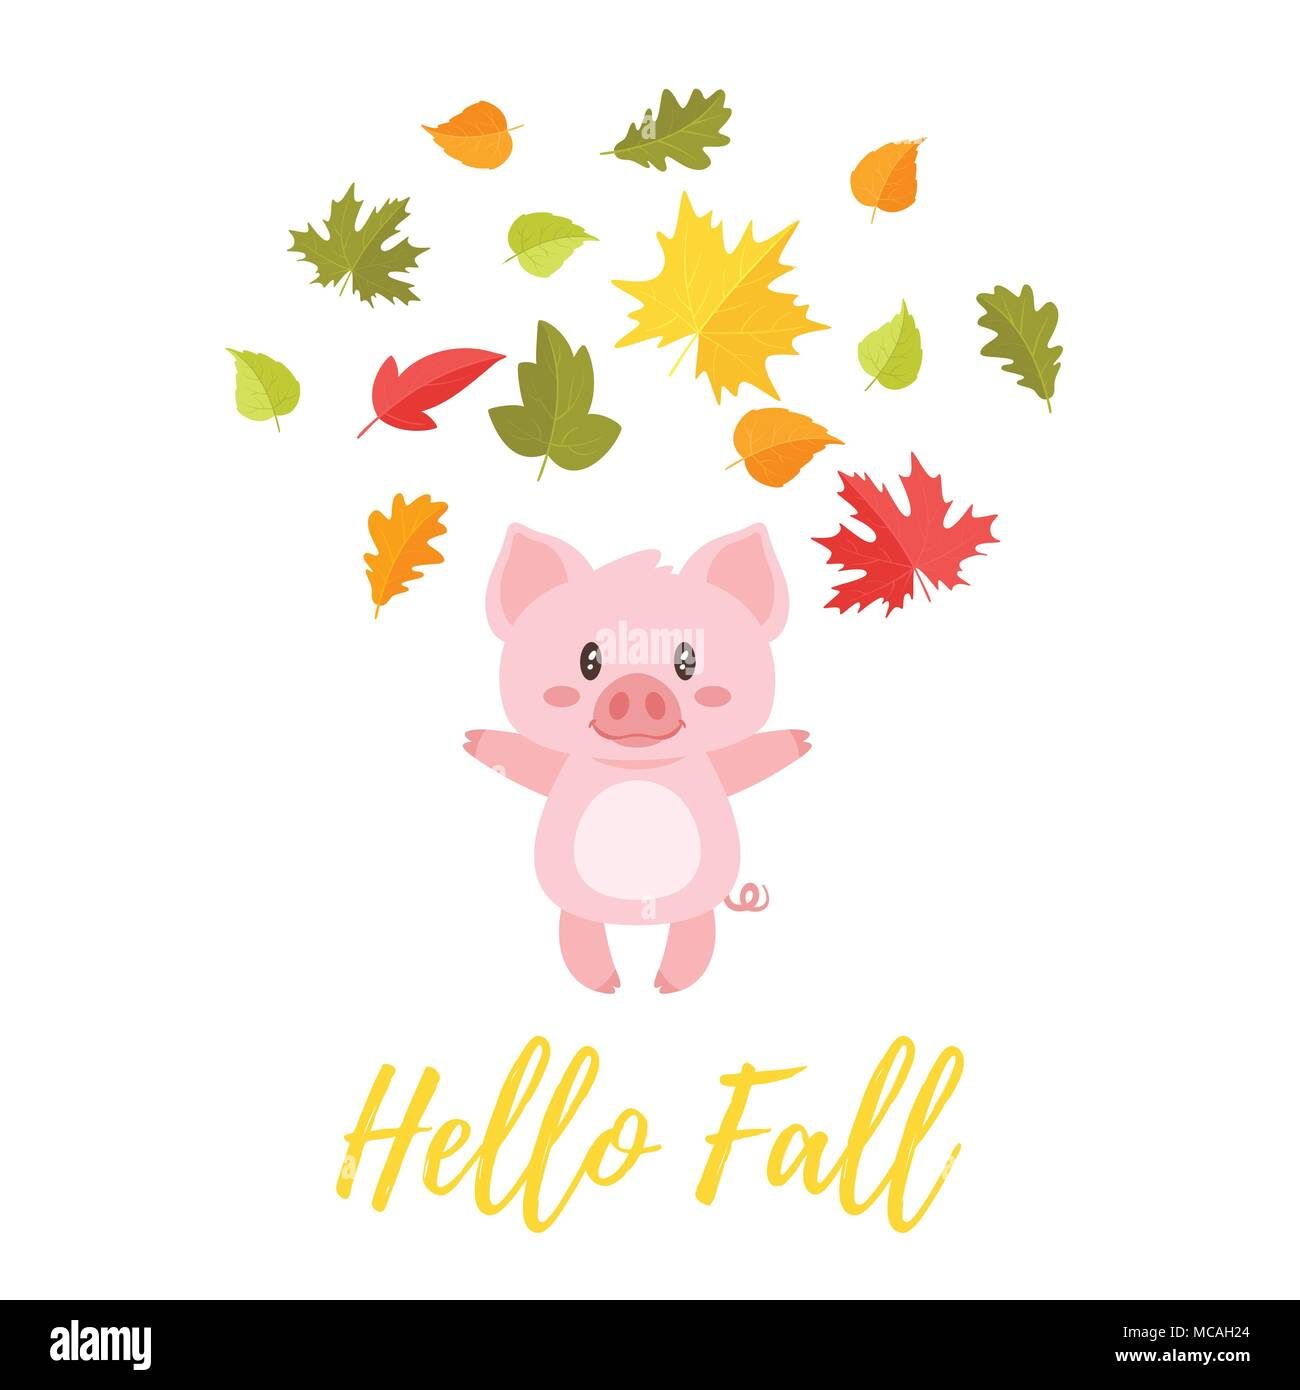 Vector Cartoon Style Illustration Of Cute Pig Tossing Autumn Colorful Leaves In The Air Hello Fall Text Stock Vector Image Art Alamy